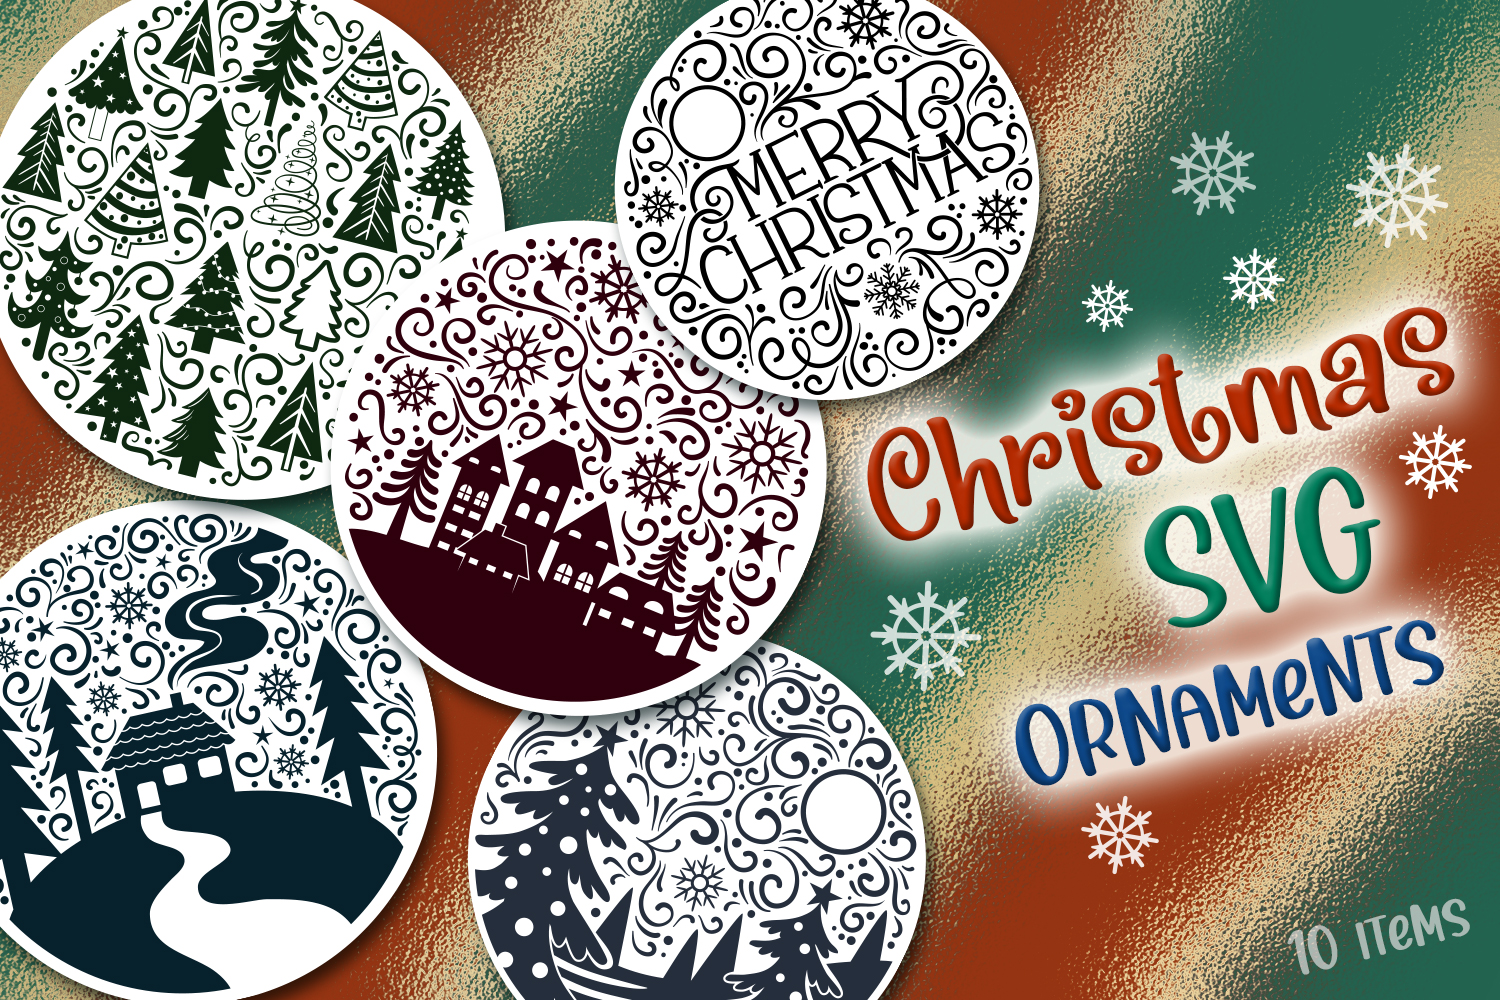 Christmas SVG Ornaments – 10 Items SVG File